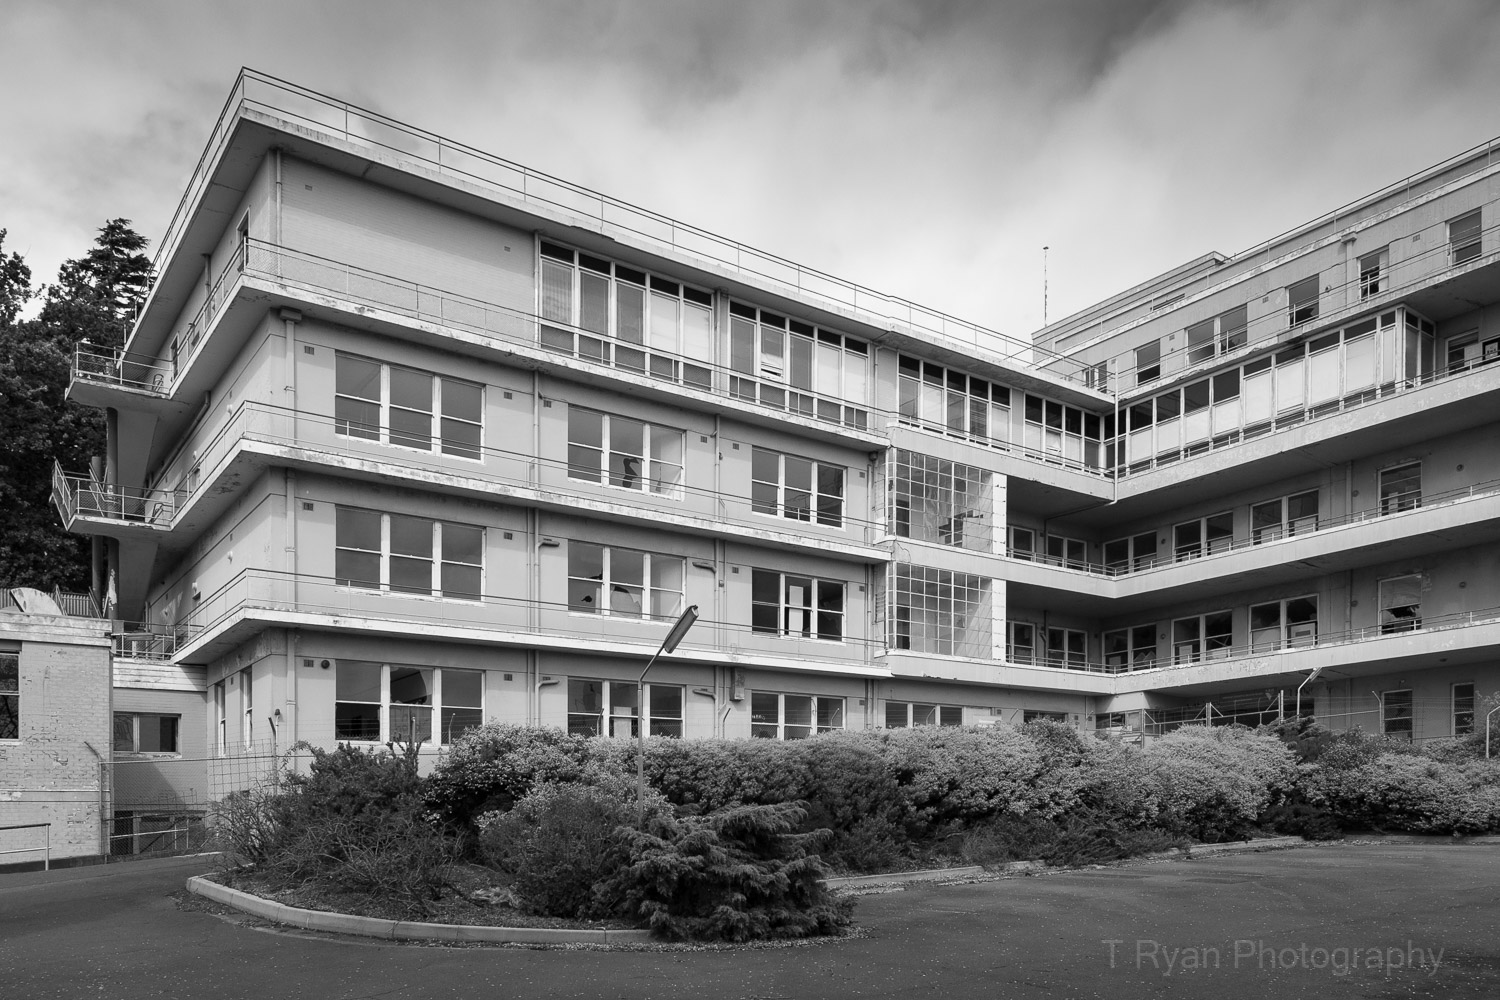 The abandoned Launceston General hospital stood abandoned for many years - I captured this photograph in 2007.